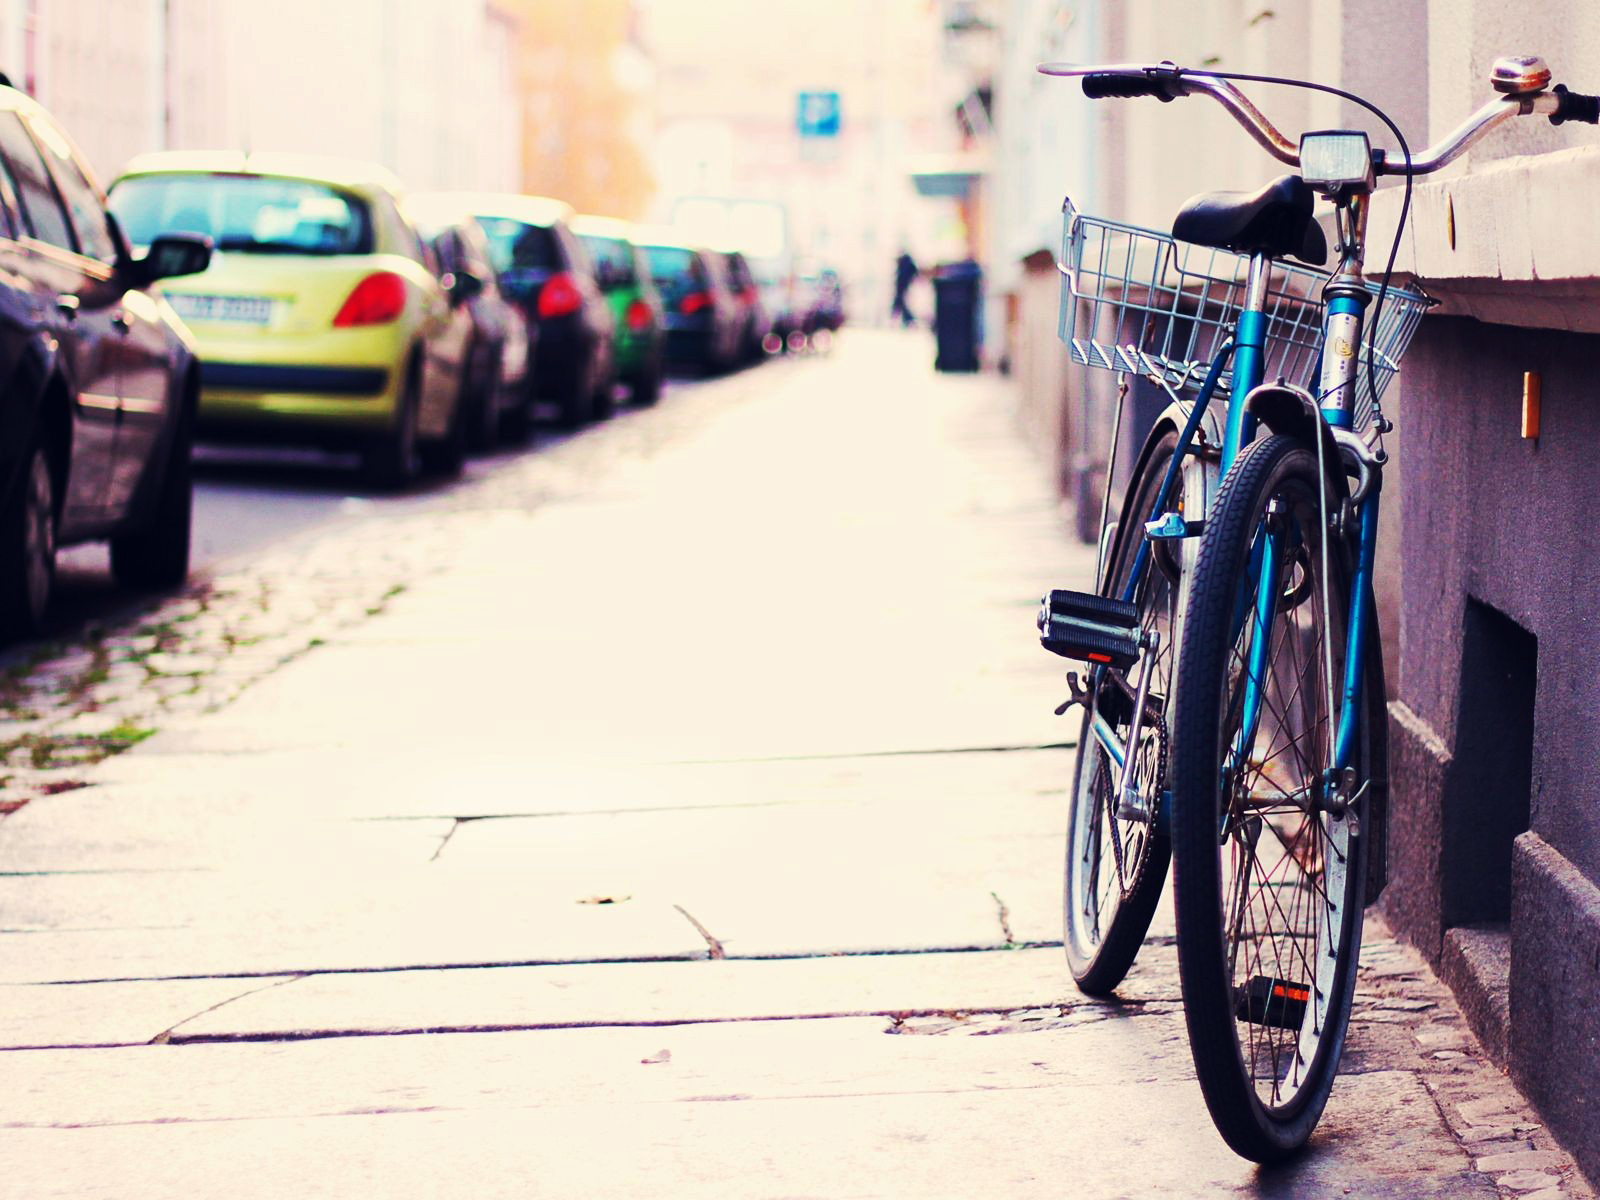 153 <b>Bicycle HD Wallpapers</b> | <b>Backgrounds</b> - <b>Wallpaper</b> Abyss